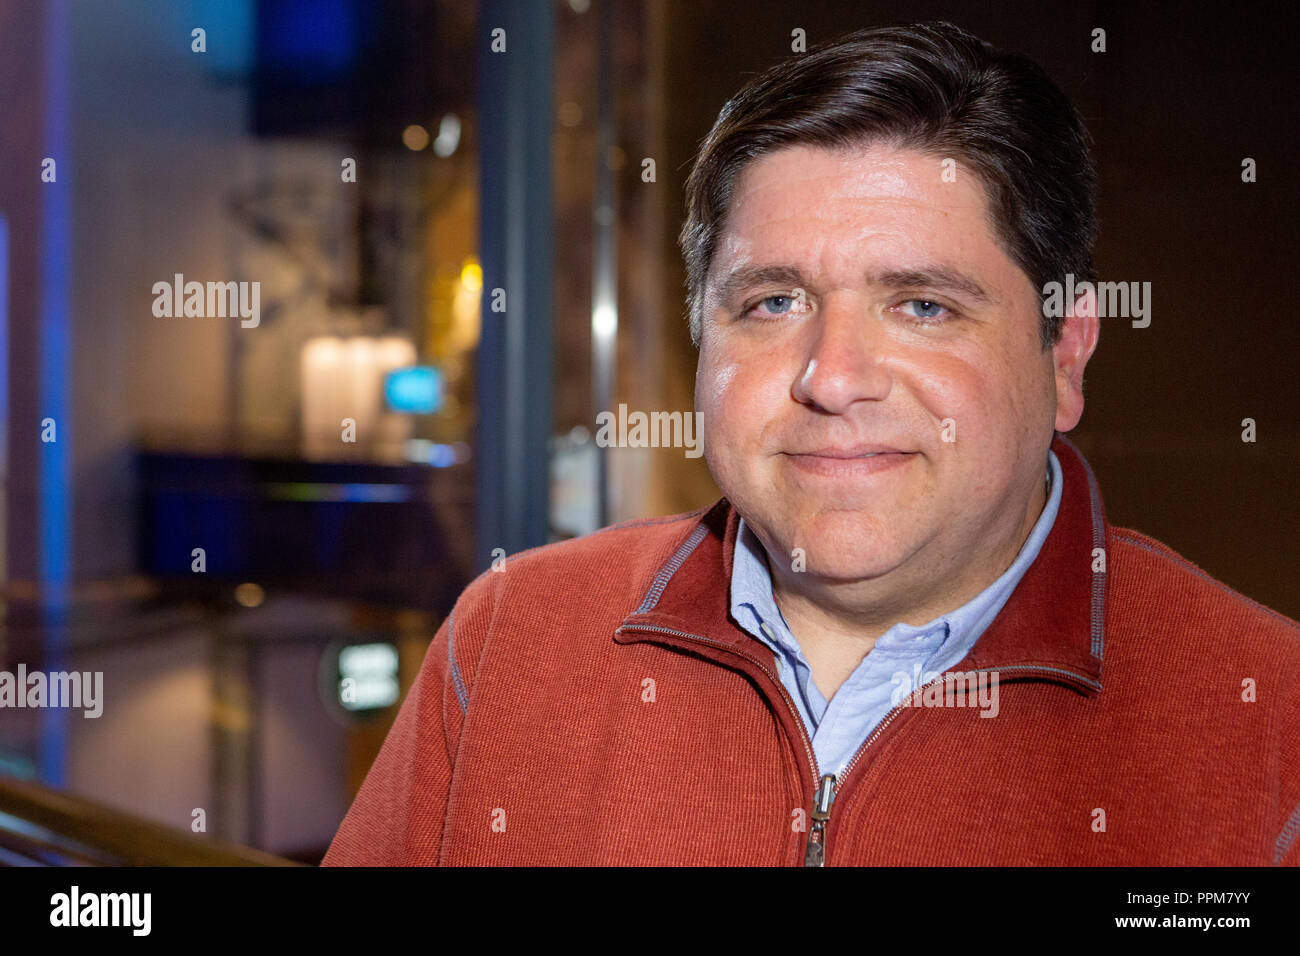 J.B. Pritzker at the Museum of Science and Industry in Chicago, Illinois. - Stock Image